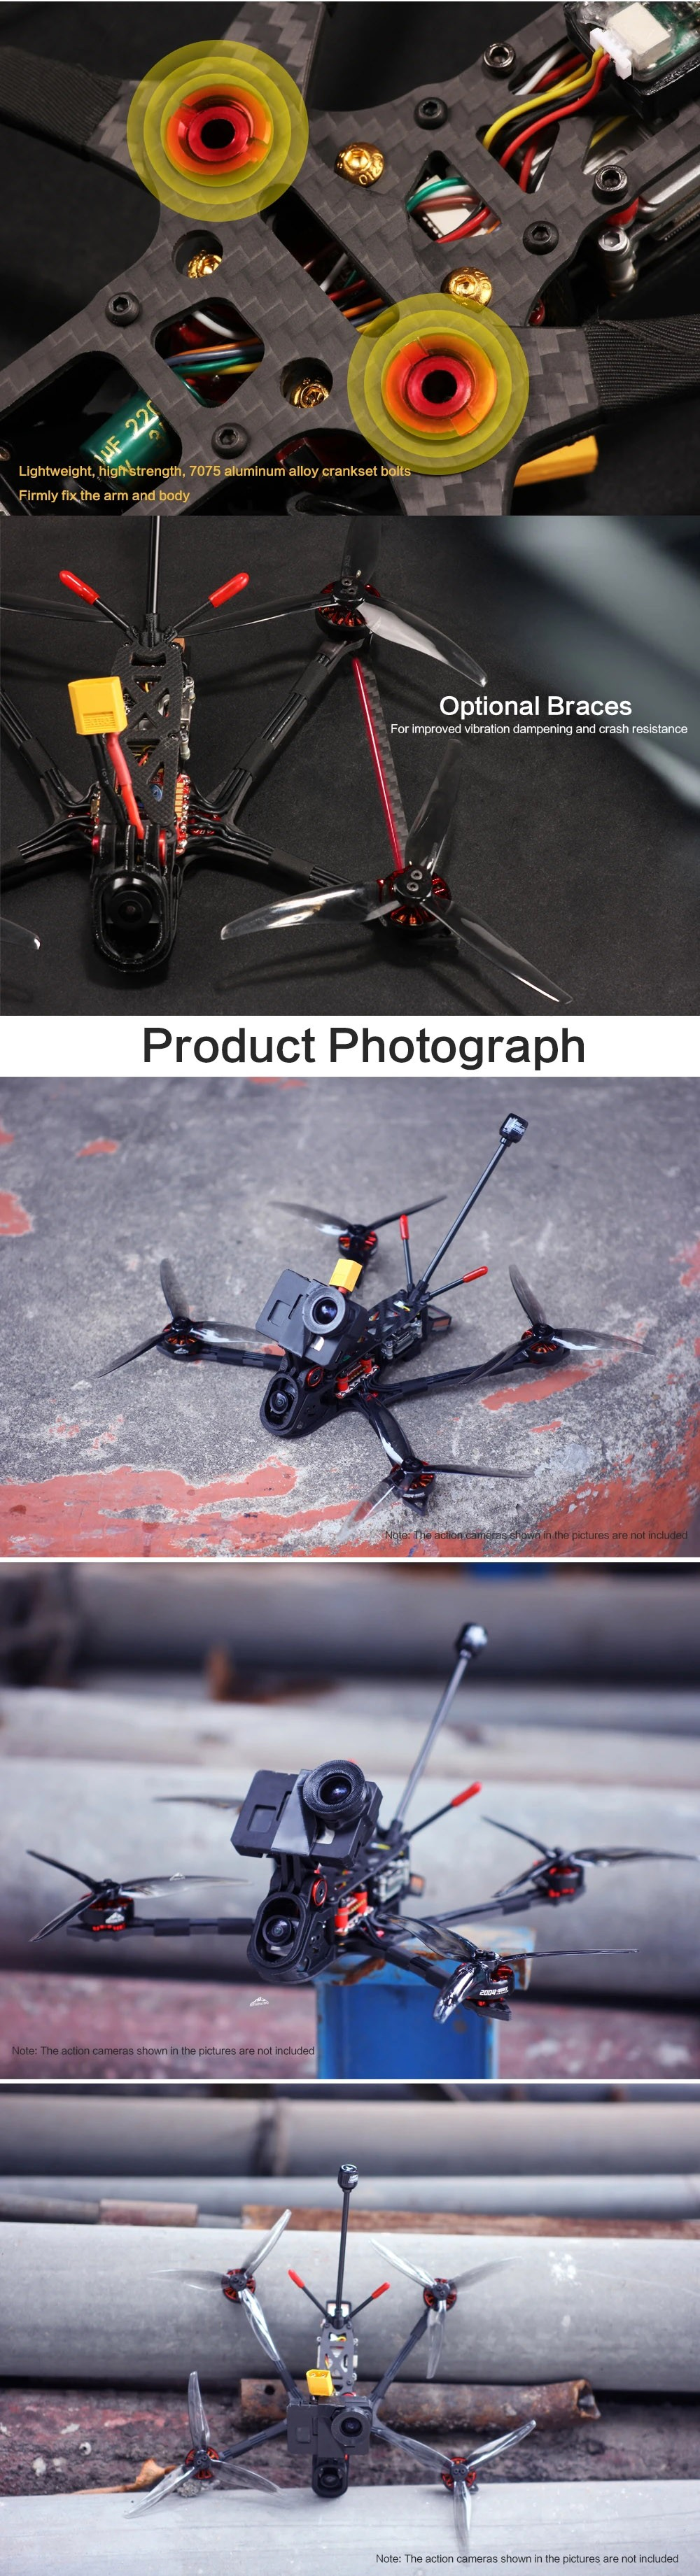 HGLRC Rekon 5 Long Range FPV Racing Drone - Black PNP (4S)